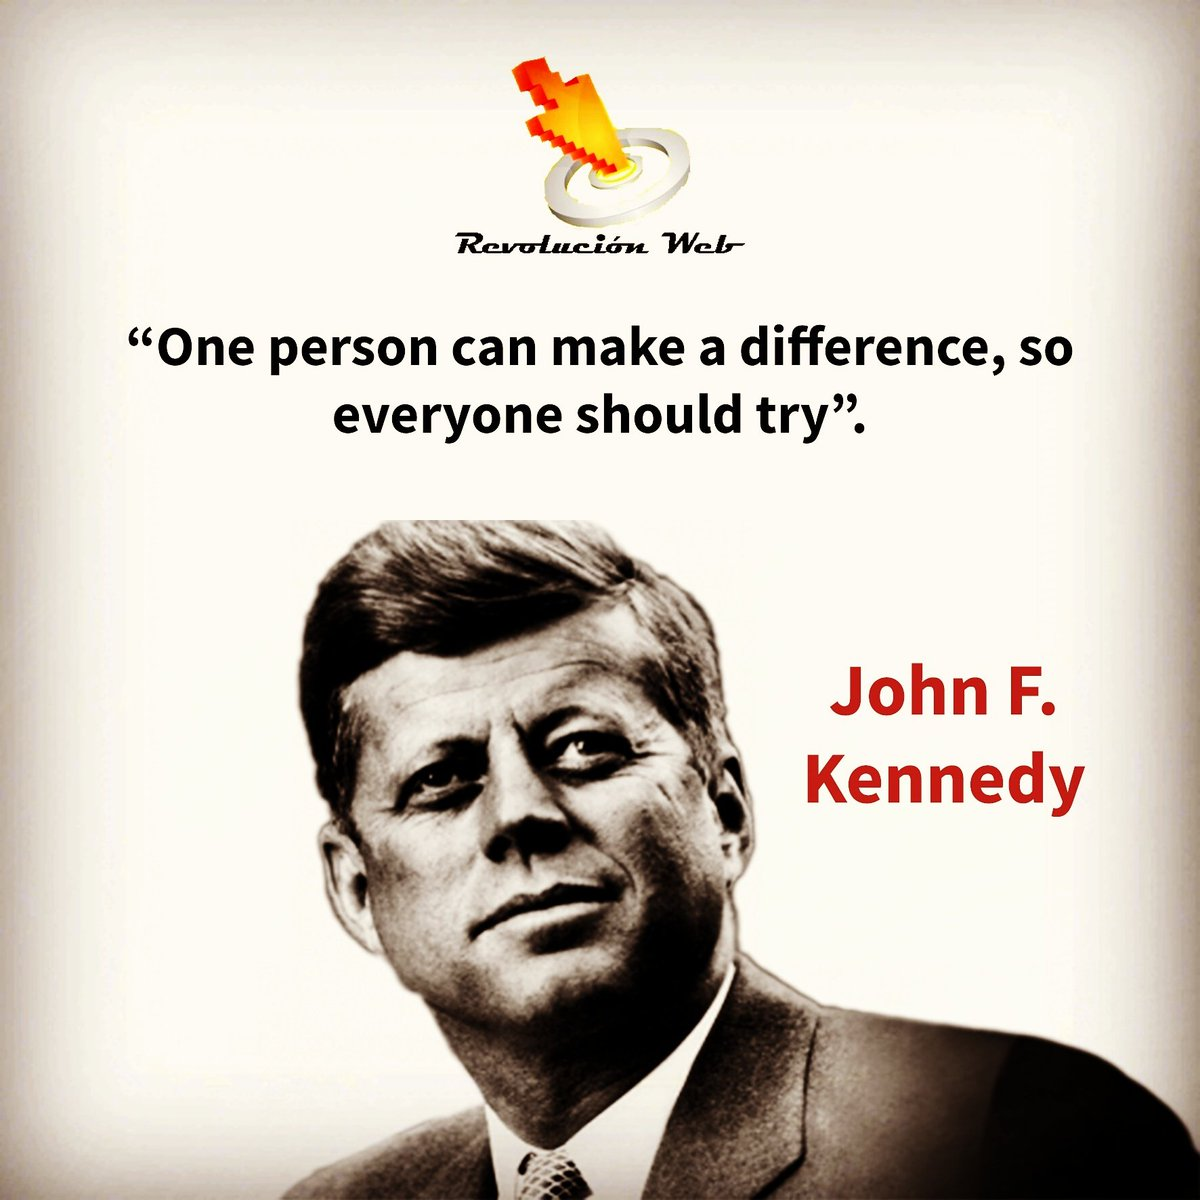 &quot;One person can make a difference, so everyone should try&quot;. #johnfkennedy #motivation #inspiration #entrepreneur #inspiringquotes #doit<br>http://pic.twitter.com/hLHeo6SyGg